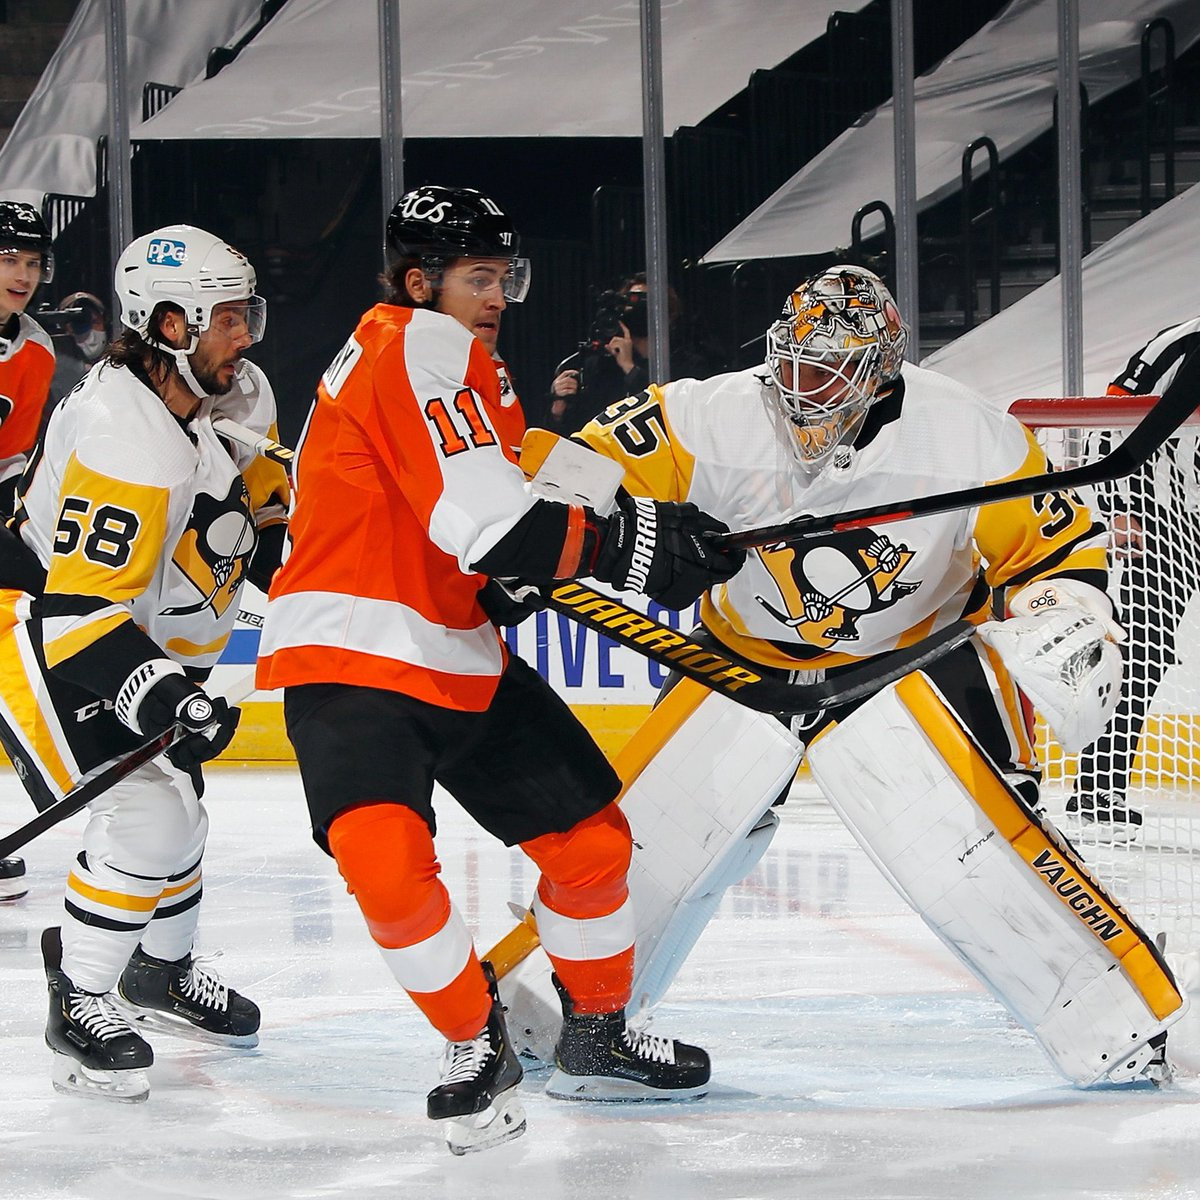 🚨EPISODE 100 🚨  🏒#Pens vs. #Flyers game review 🏒Interview w/ Paul Steigerwald 🏒Steigy's First interactions w/ Jaromir Jagr    #LetsGoPens #Pens #HockeyTwitter #Podcast #NHL #THPN #HockeyPodcast #TuneIn